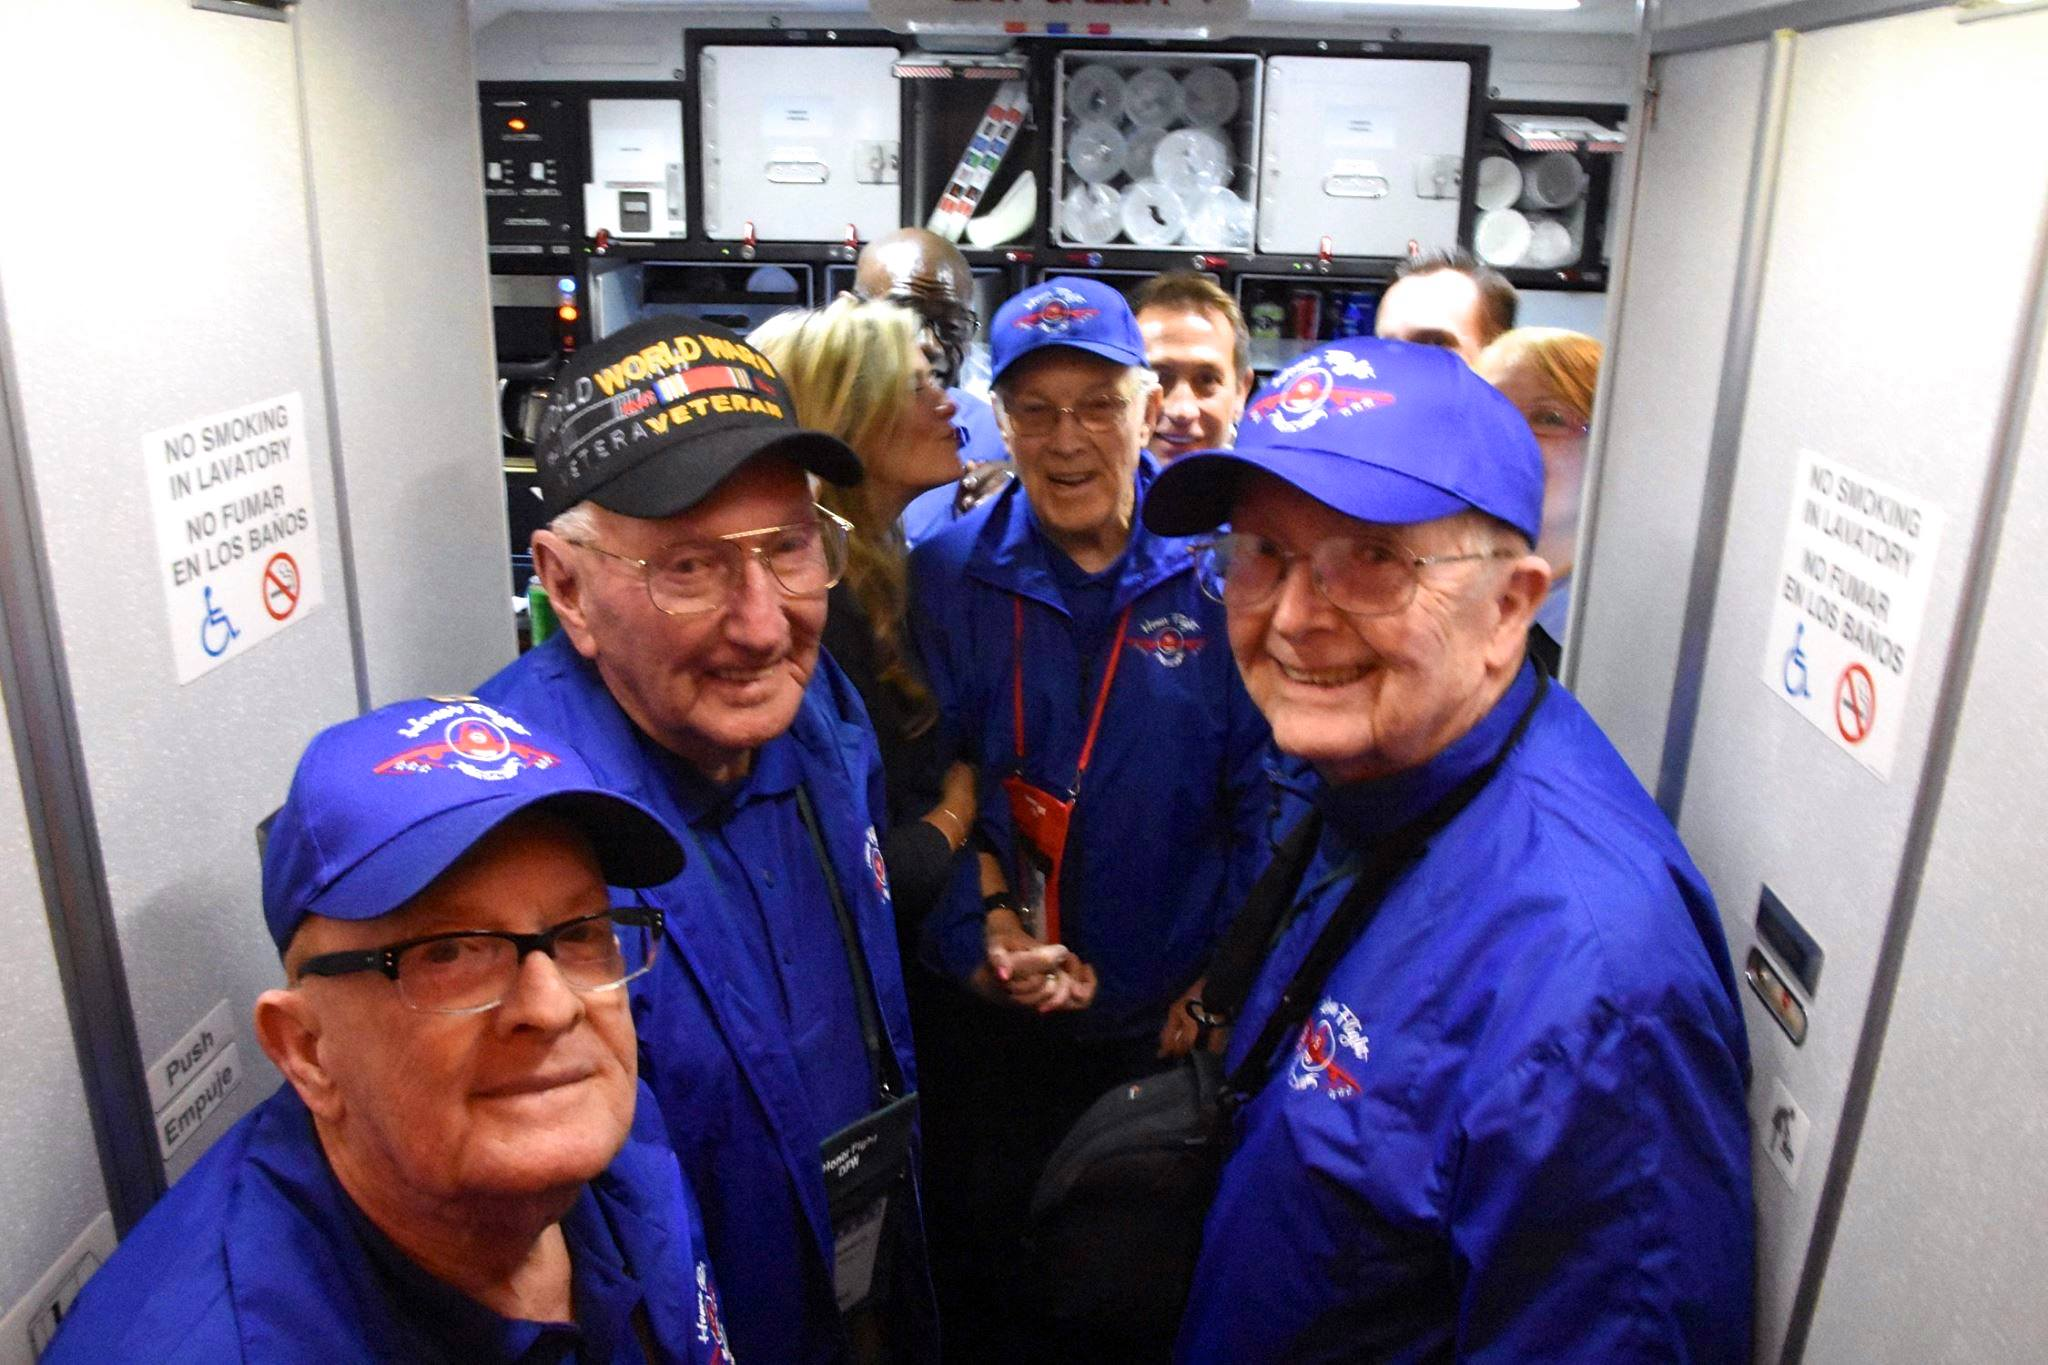 Honor Flight DFW 7th Annual Golf Classic gallery image #18